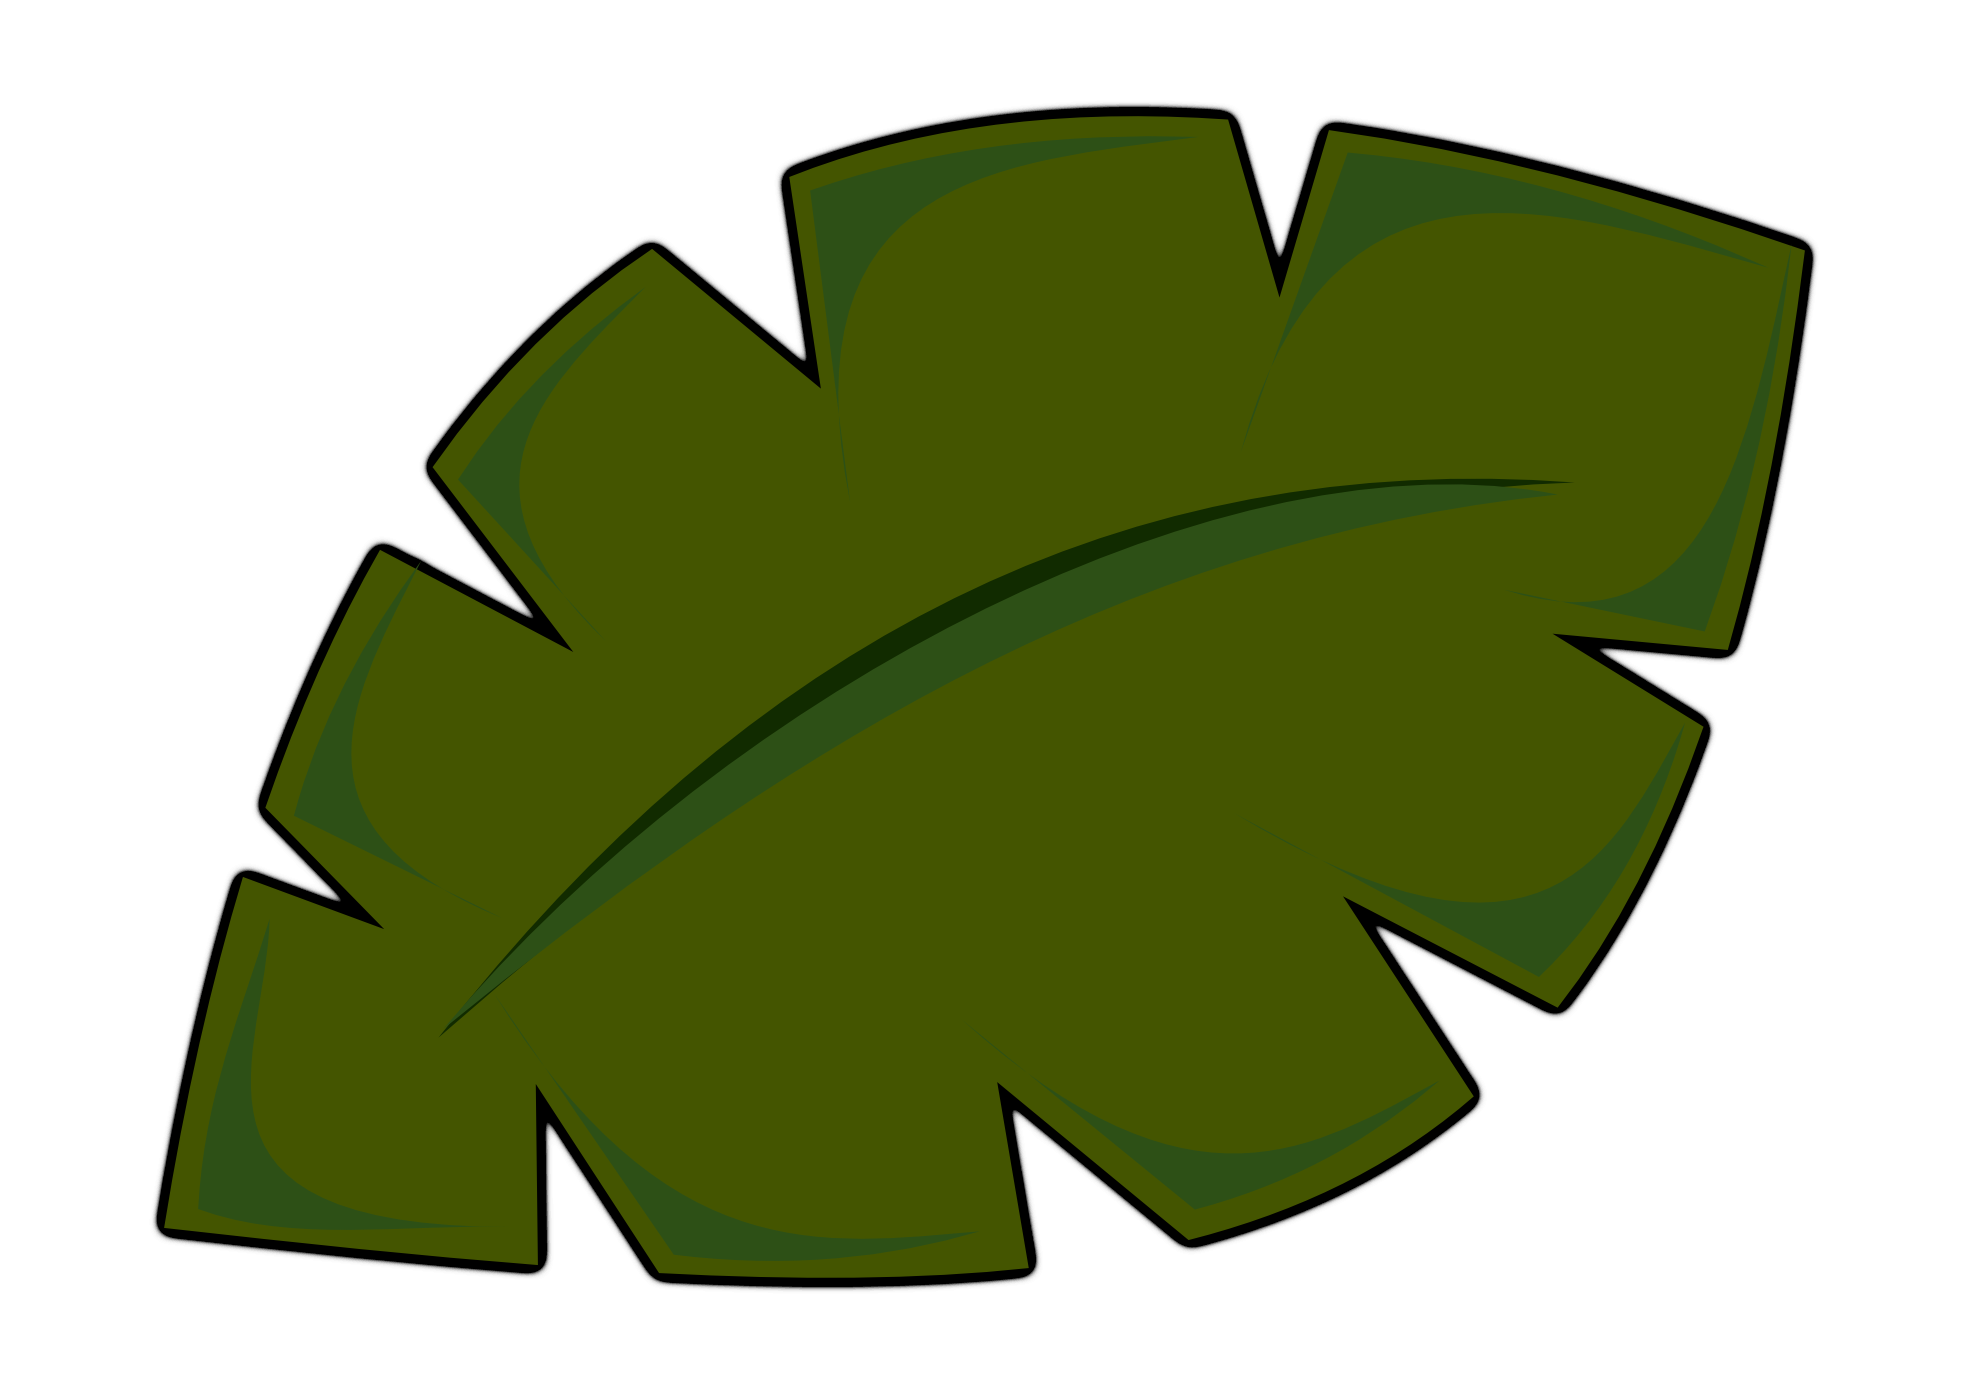 Jungle leaves clip art.